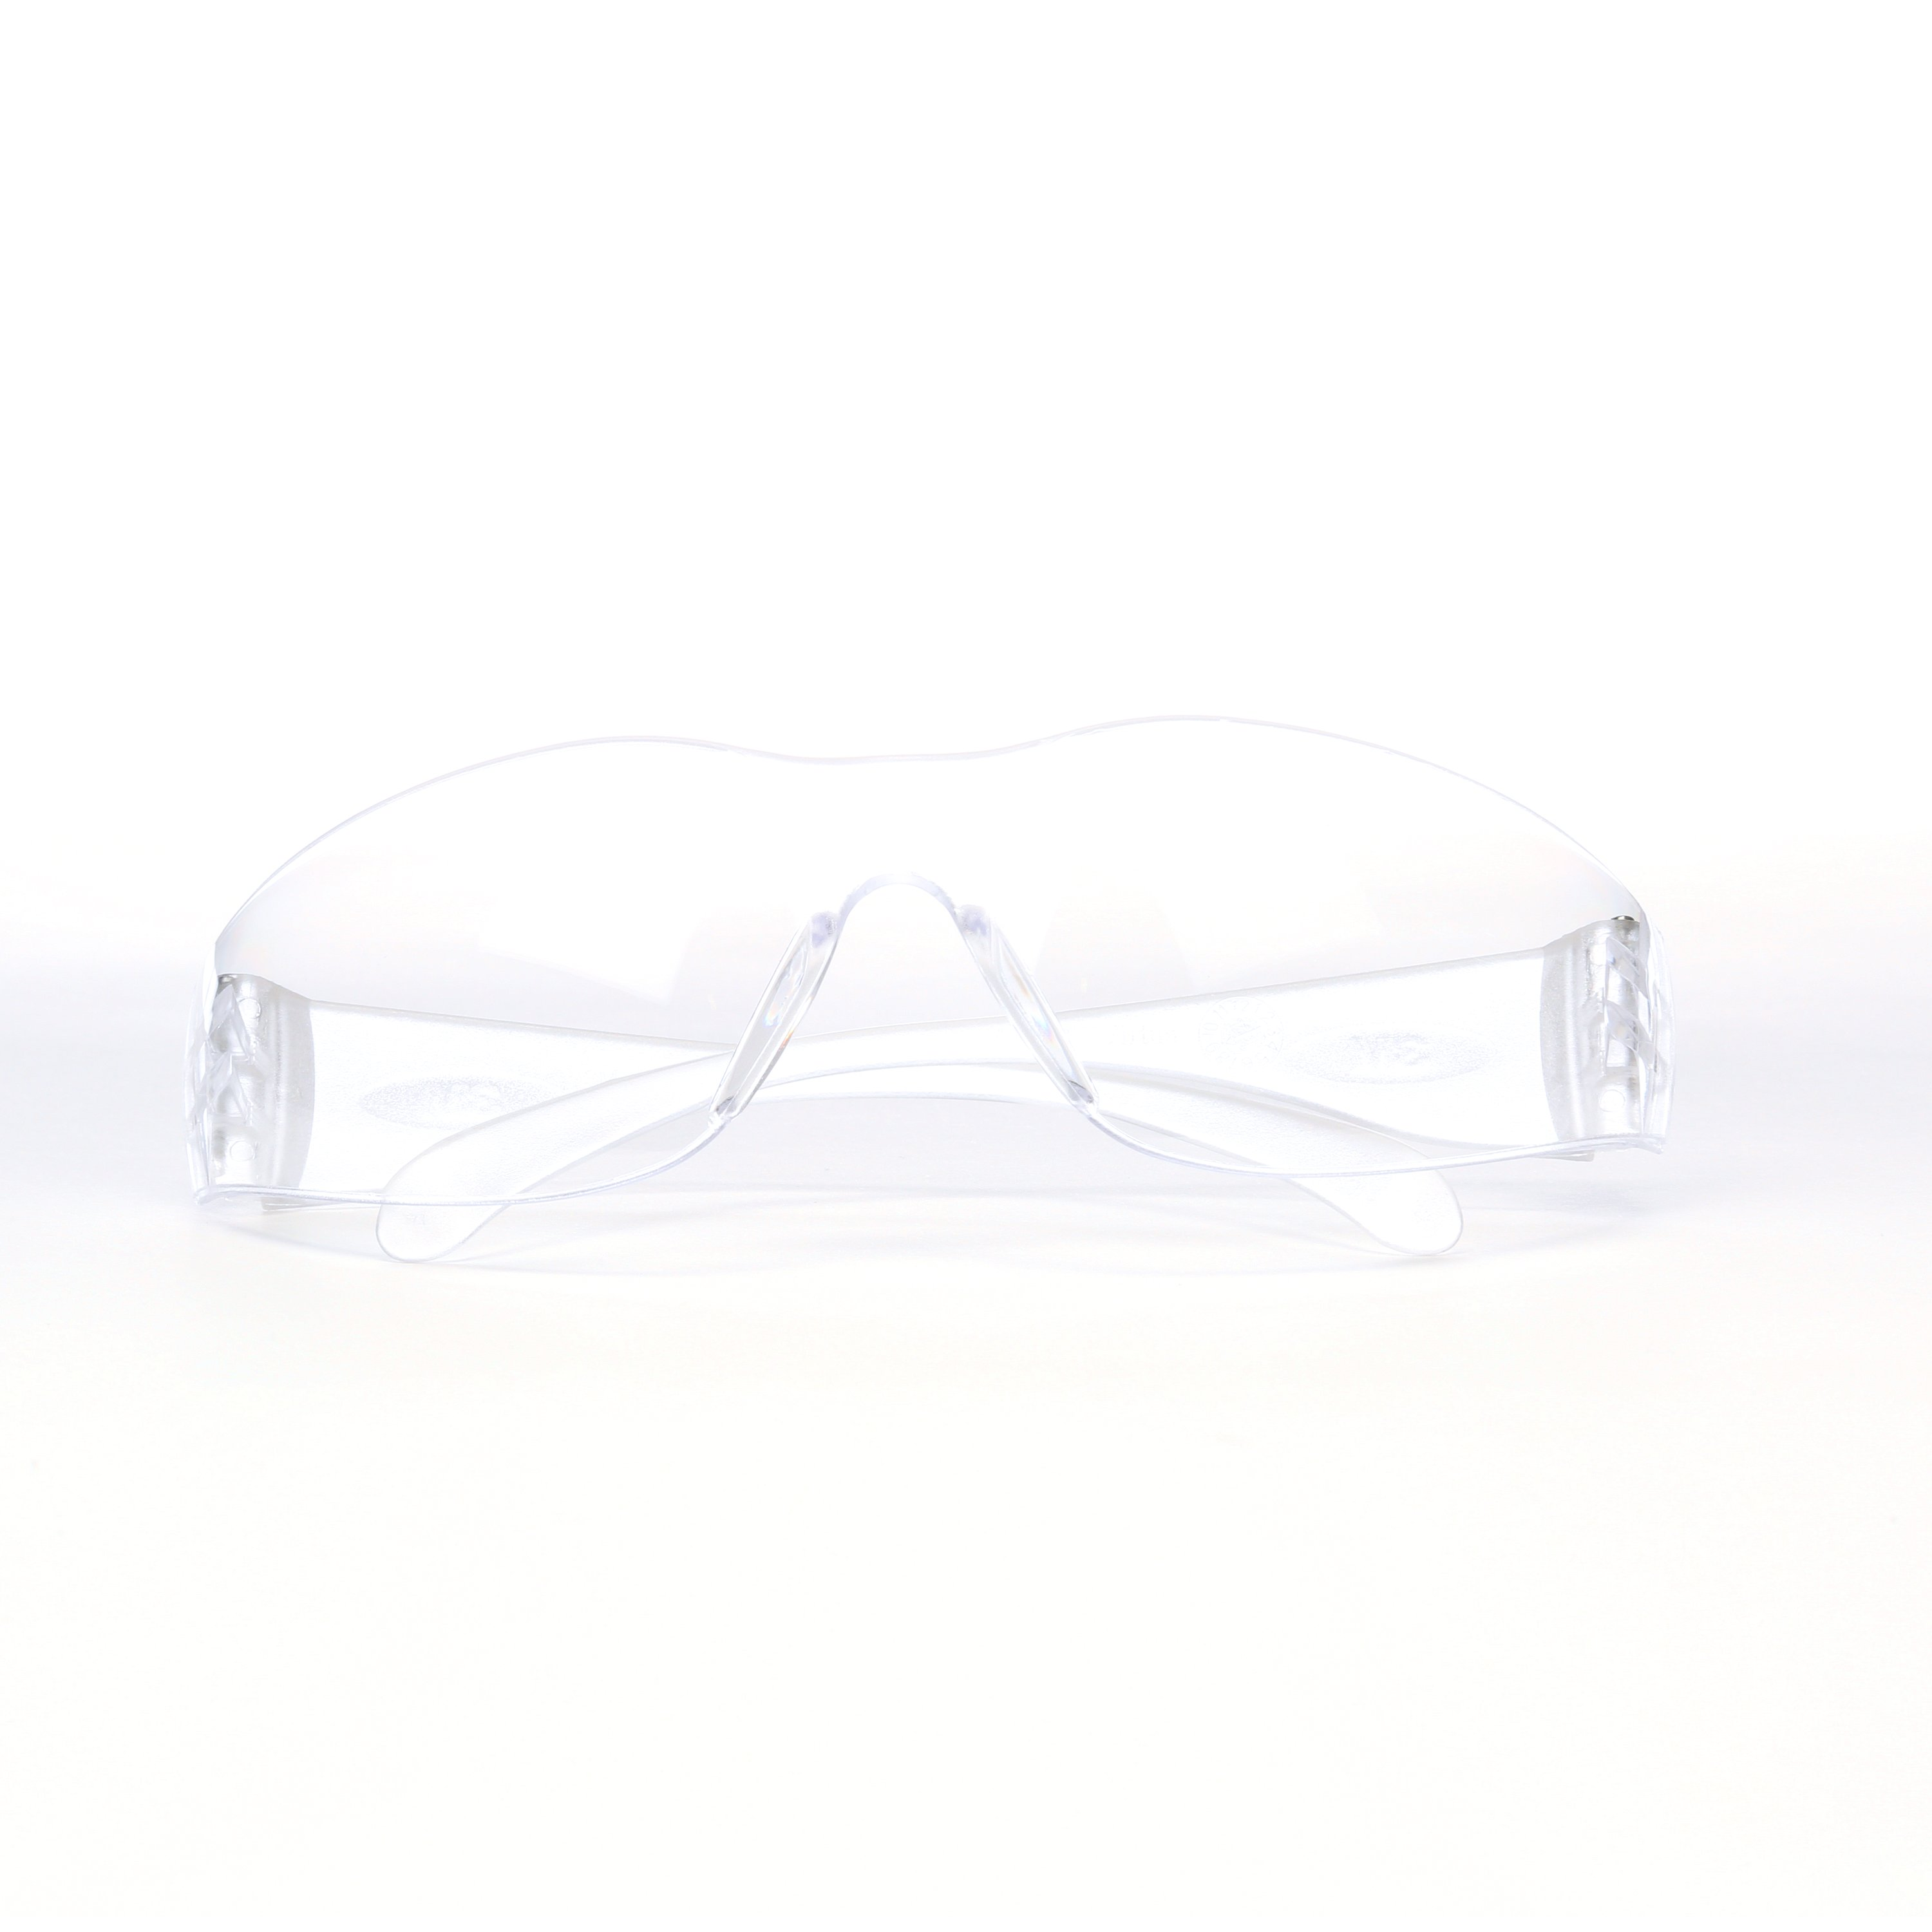 3M™ 051141-97587 Non-Mirrored Safety Eyewear, Anti-Scratch, Clear Lens, Wrap Around Frame, Black/Red, Plastic Frame, Polycarbonate Lens, ANSI Z87.1-2010, CSA Z94.3, AS/NZS 1337